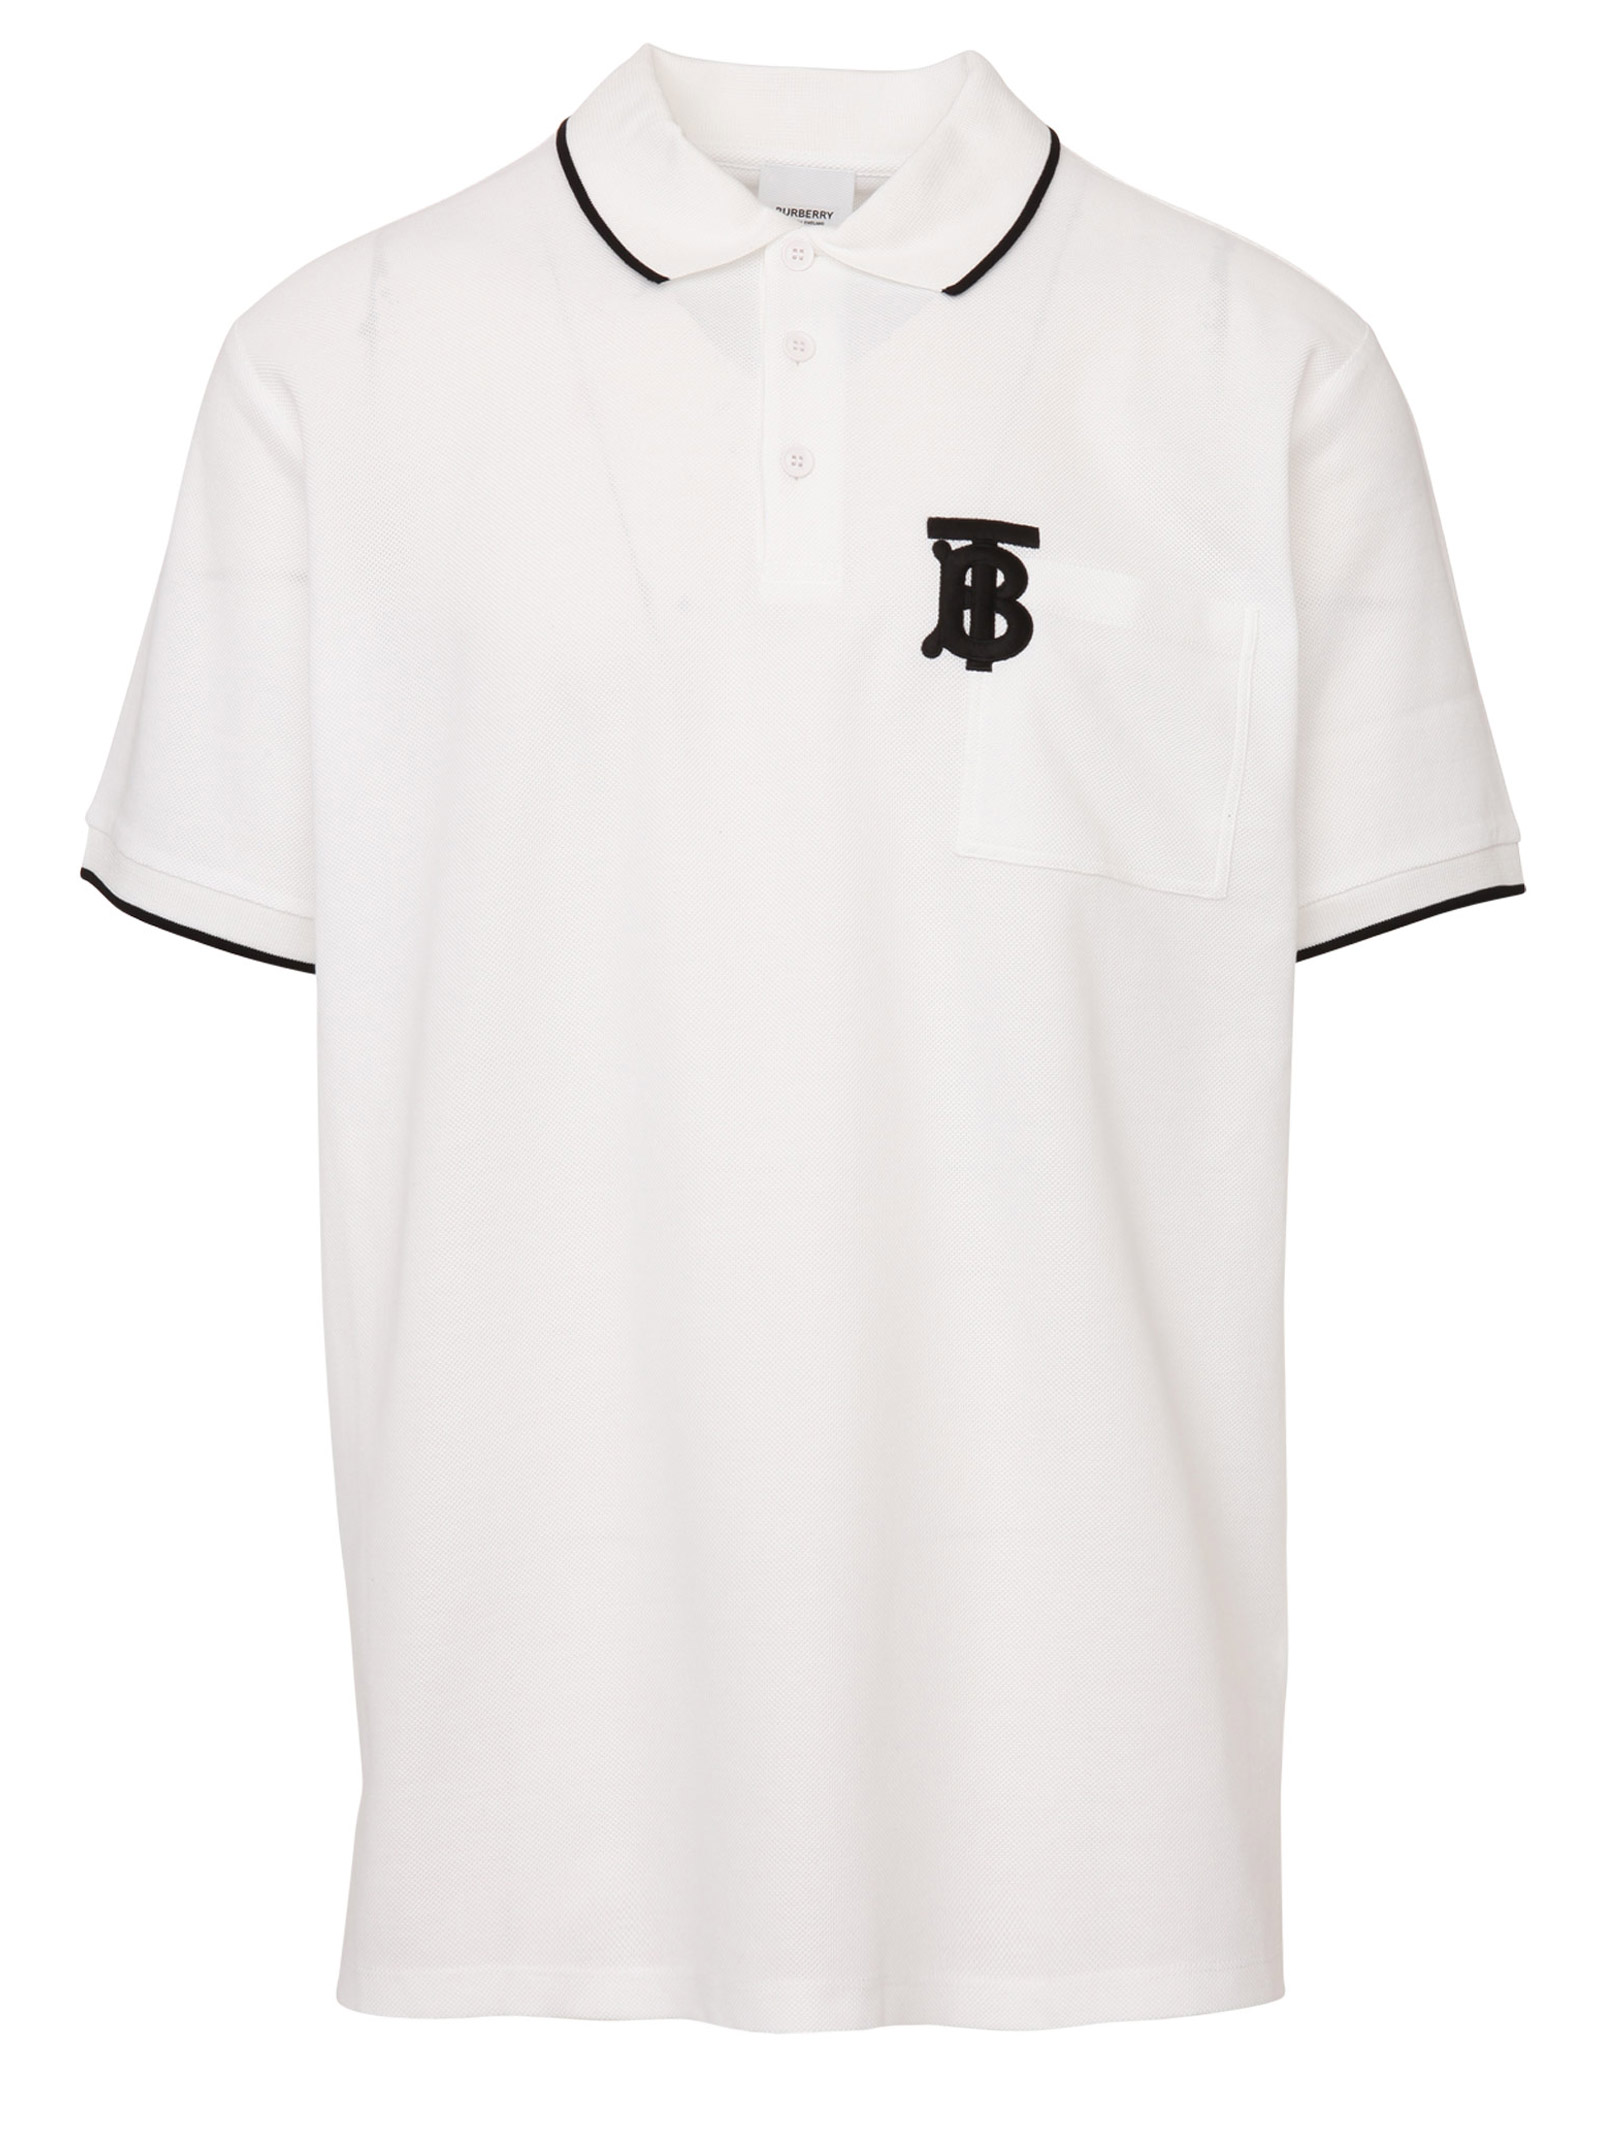 purchase genuine top-rated quality 60% discount Burberry Polo shirt